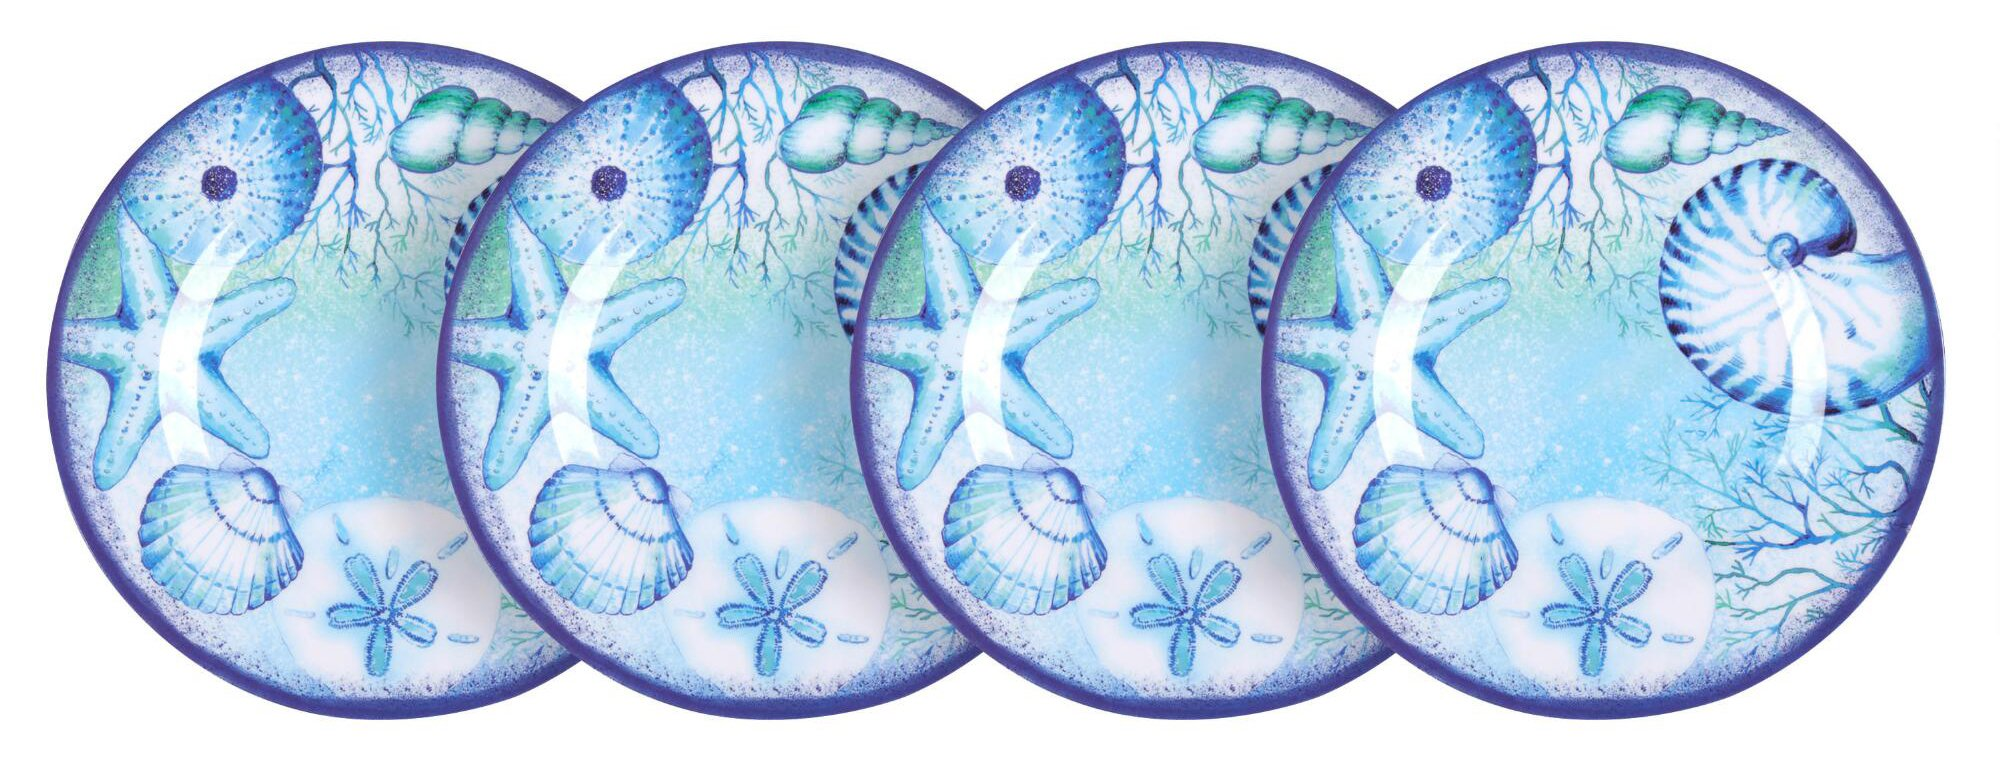 Nantucket Home Blue Seashells Melamine Salad Plates, Set of 4